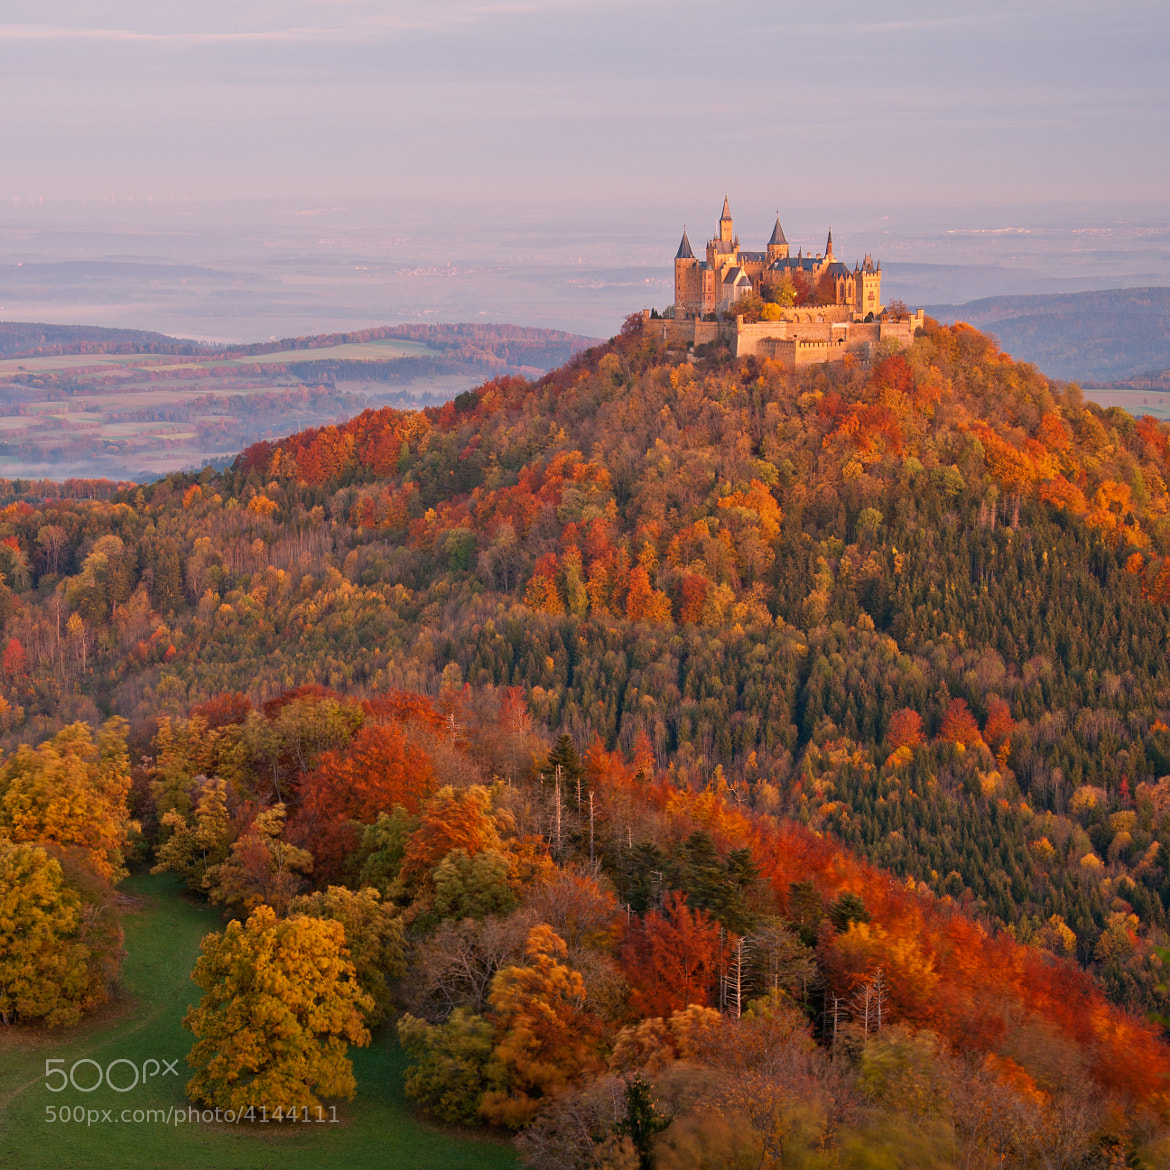 Photograph Burg Hohenzollern by Dominic Walter on 500px